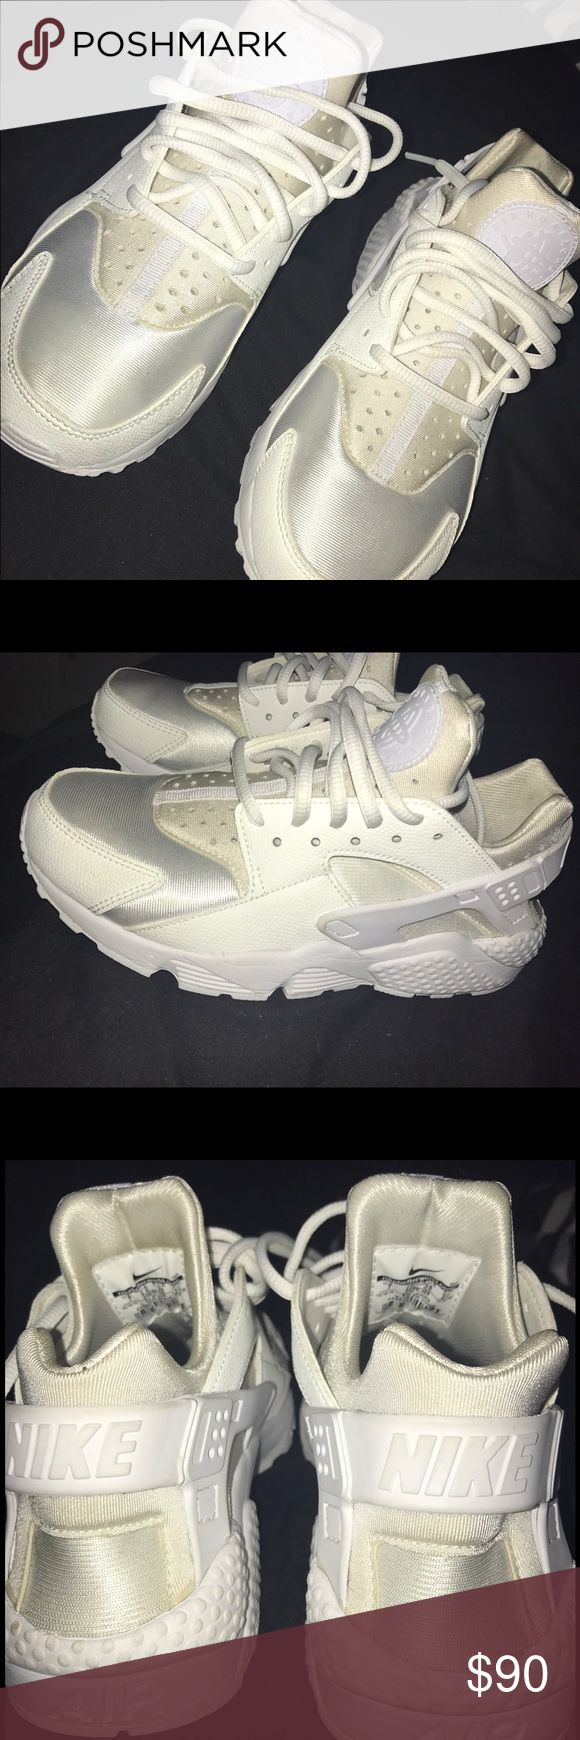 All white nike huarache shoes. Size 7 Condition: 9.5/10 Nike Shoes Athletic Shoes